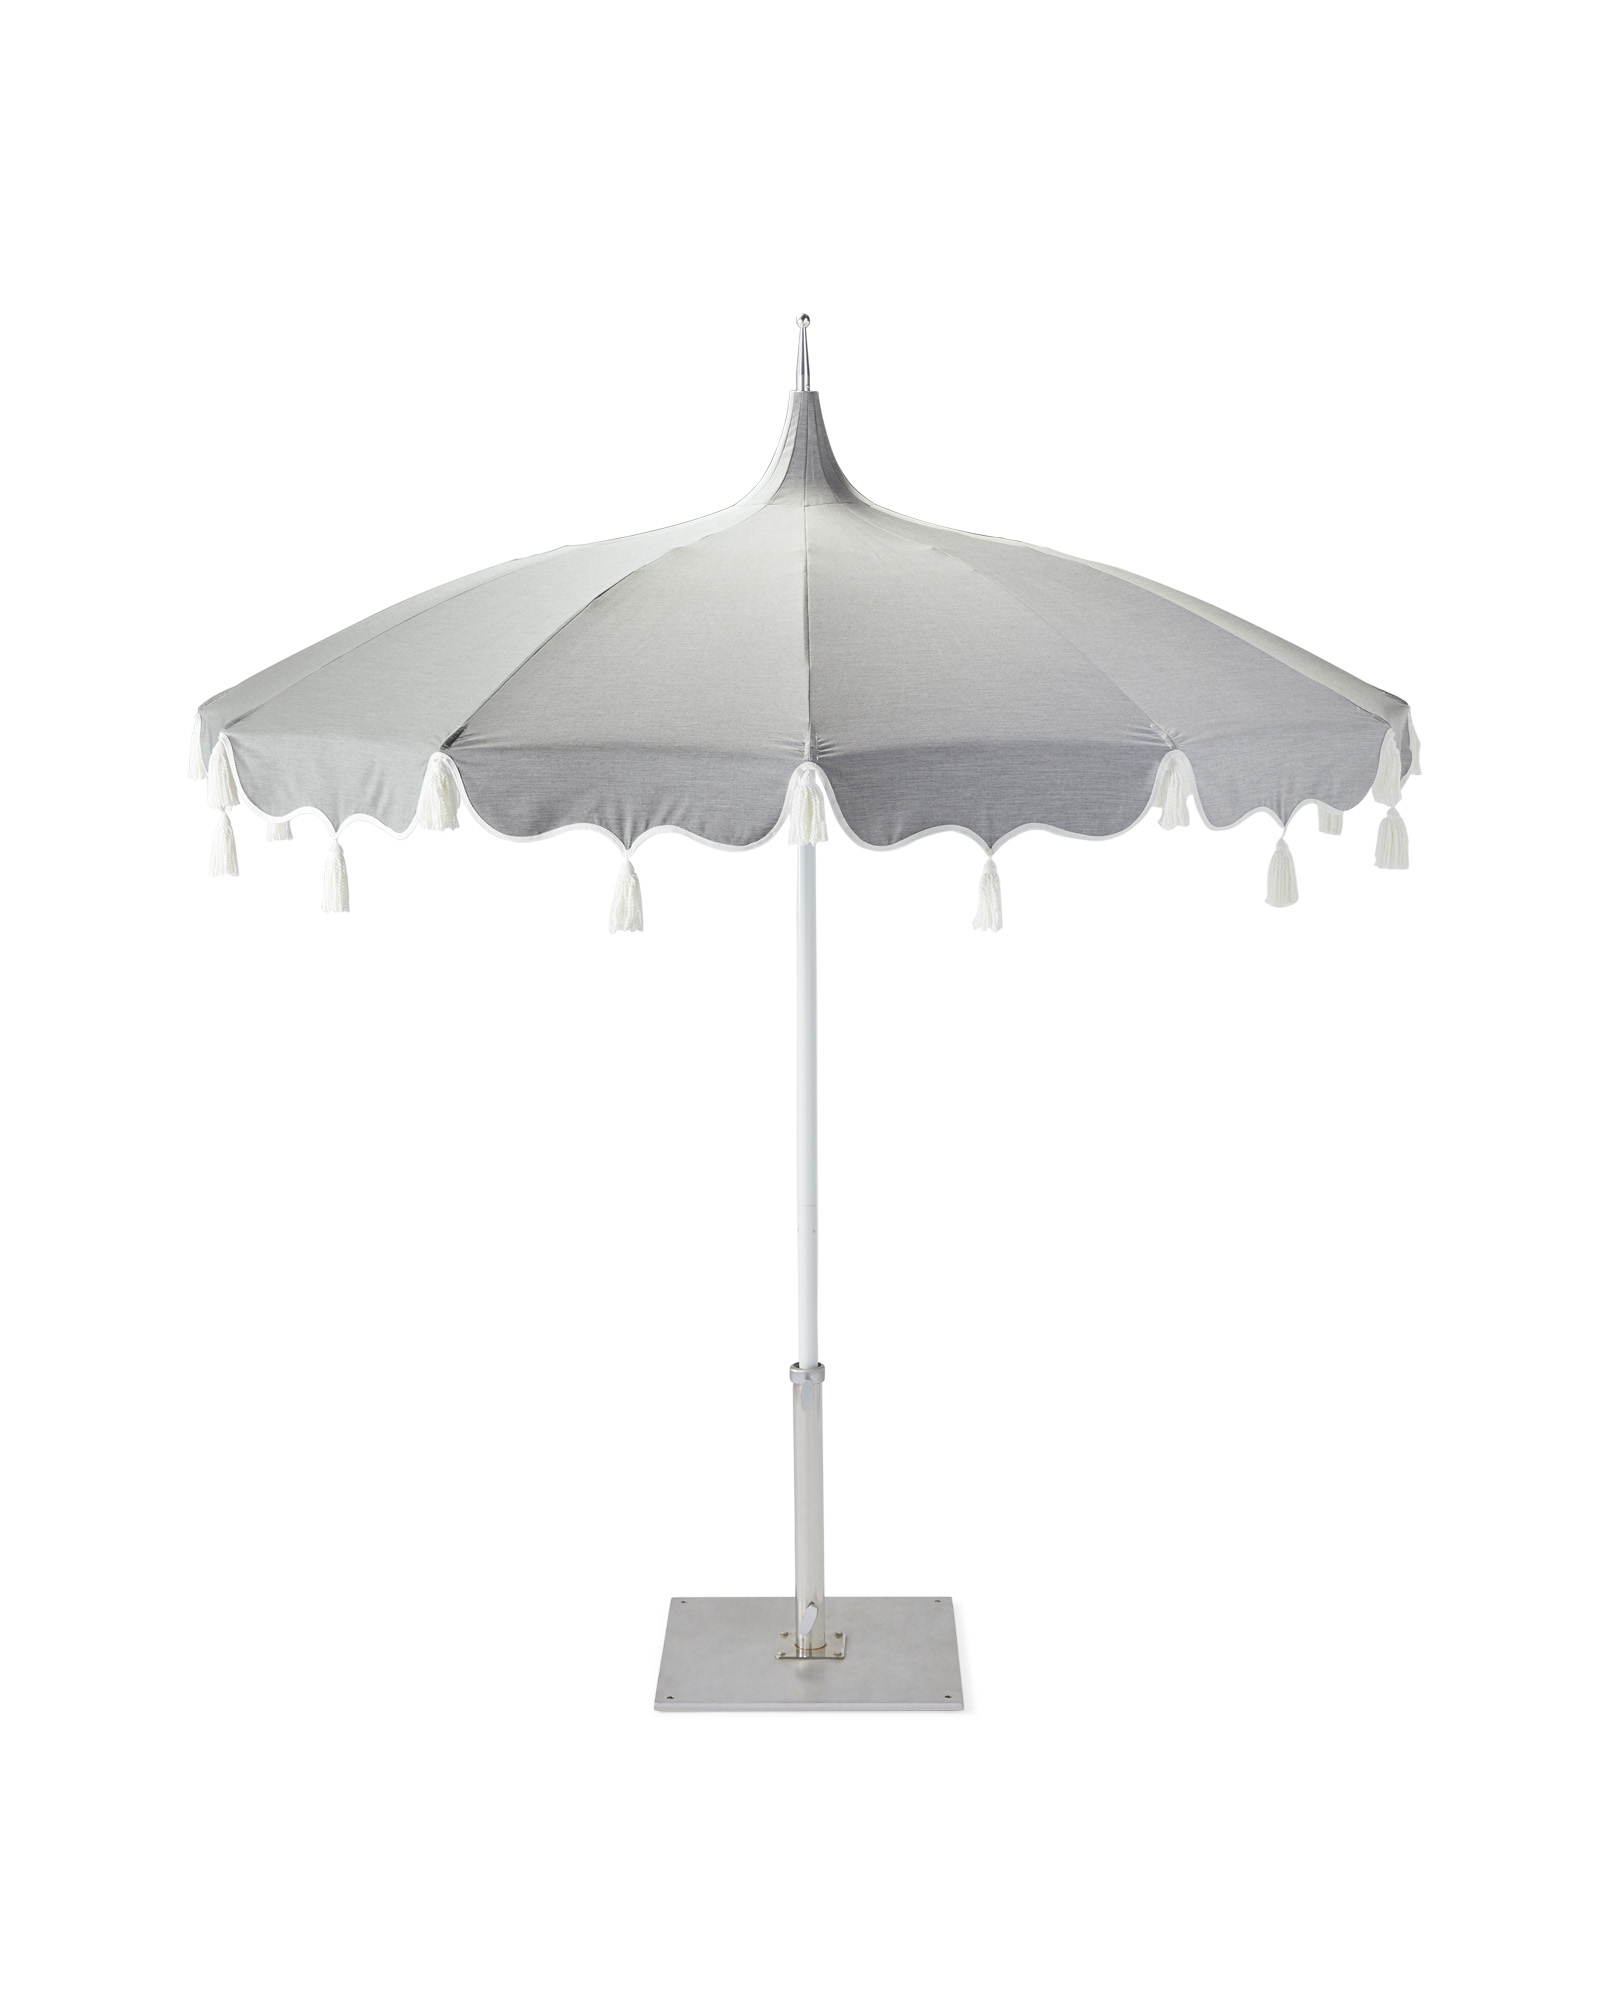 Alicante Tassel Umbrella, Sunbrella Granite